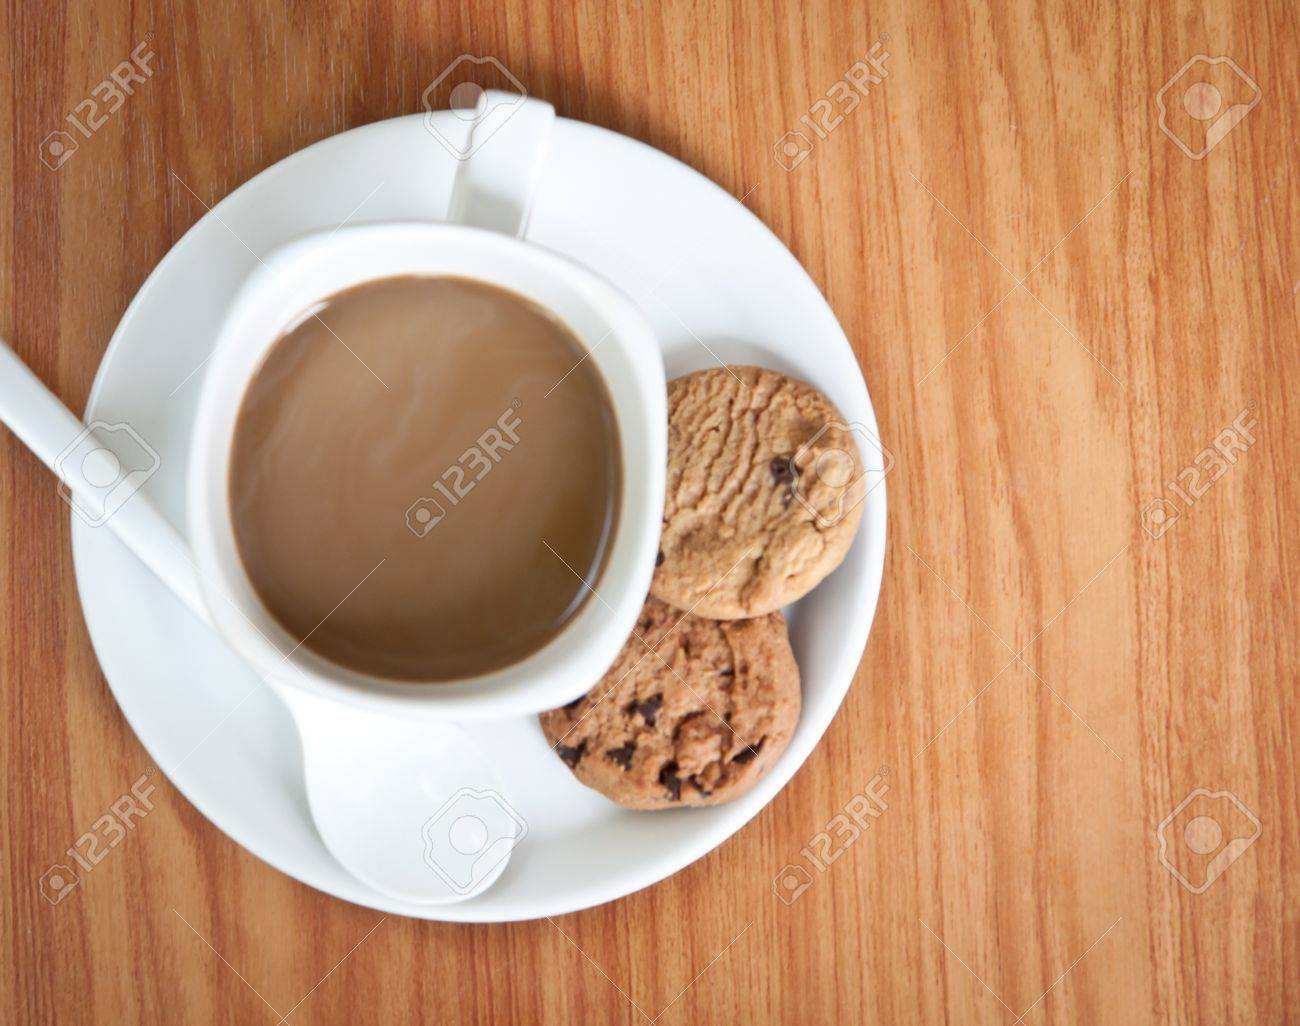 Cookie Coffee Cups Coffee Cup With Cookie On Wood Table Stock Photo Picture And